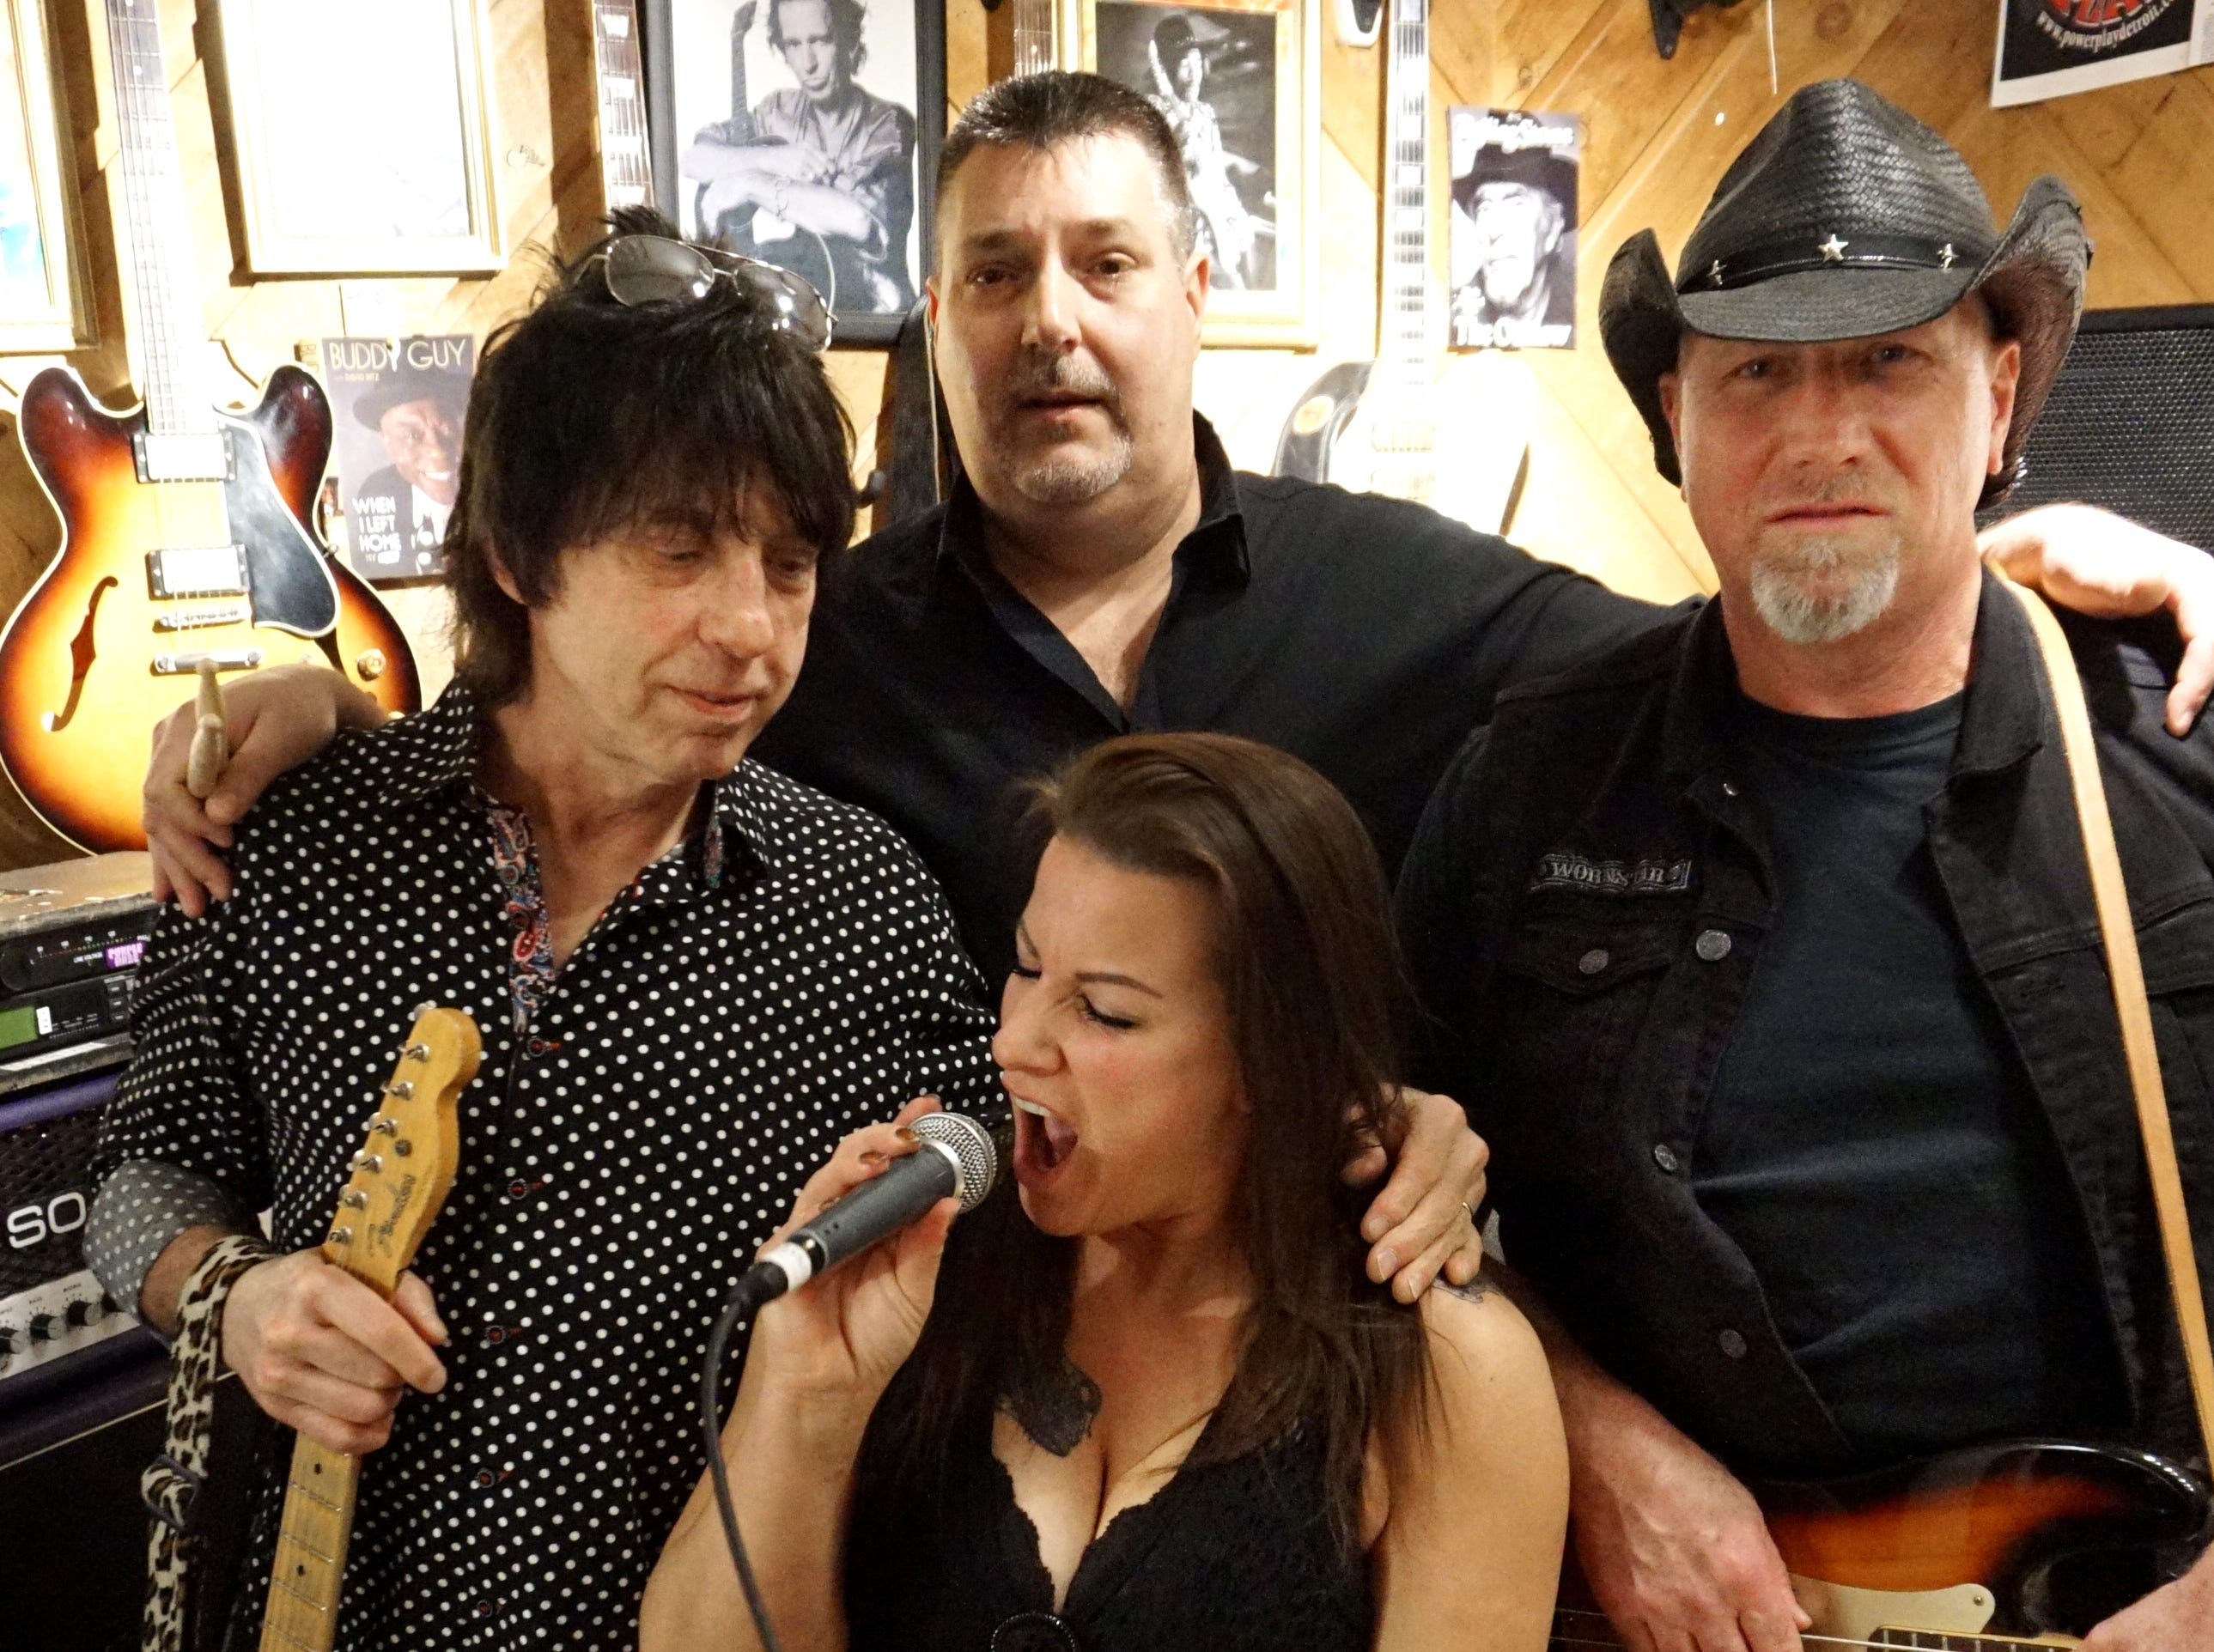 Power Play has some fun their studio on a Friday night. From left guitarist Michael Smith, drummer Bob Olds, singer April Hudson, and bassist Gary Kosten.